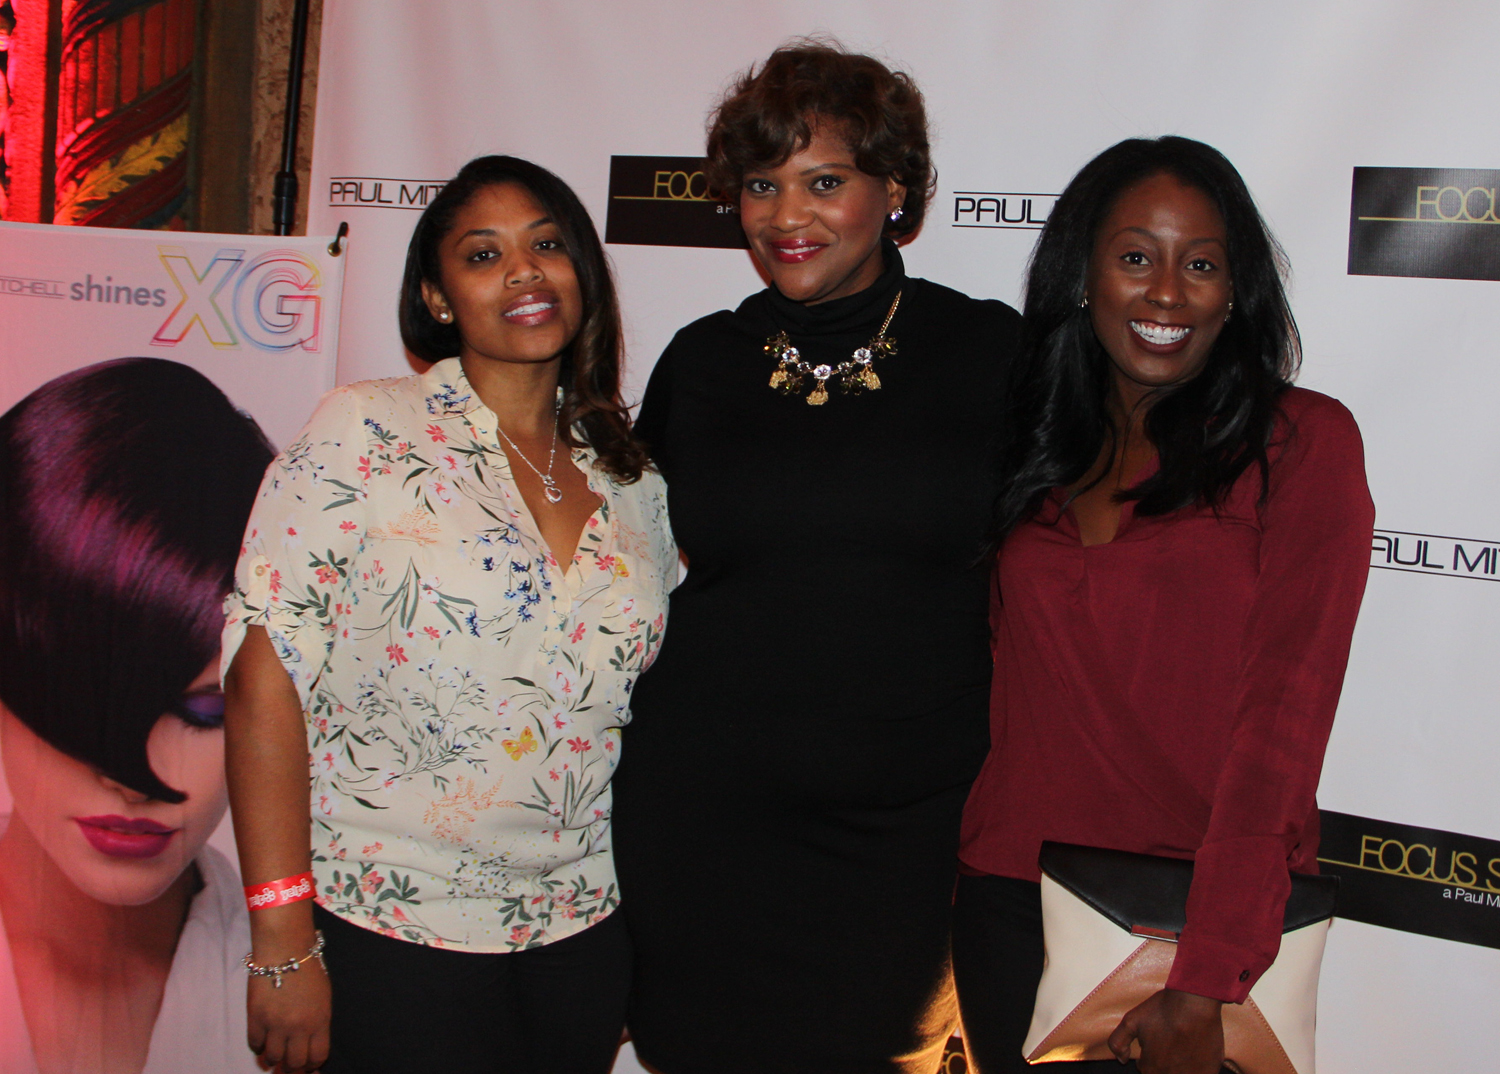 Charisse White, Bridget Dale, Christy Evedi. Beauty celebrating art.